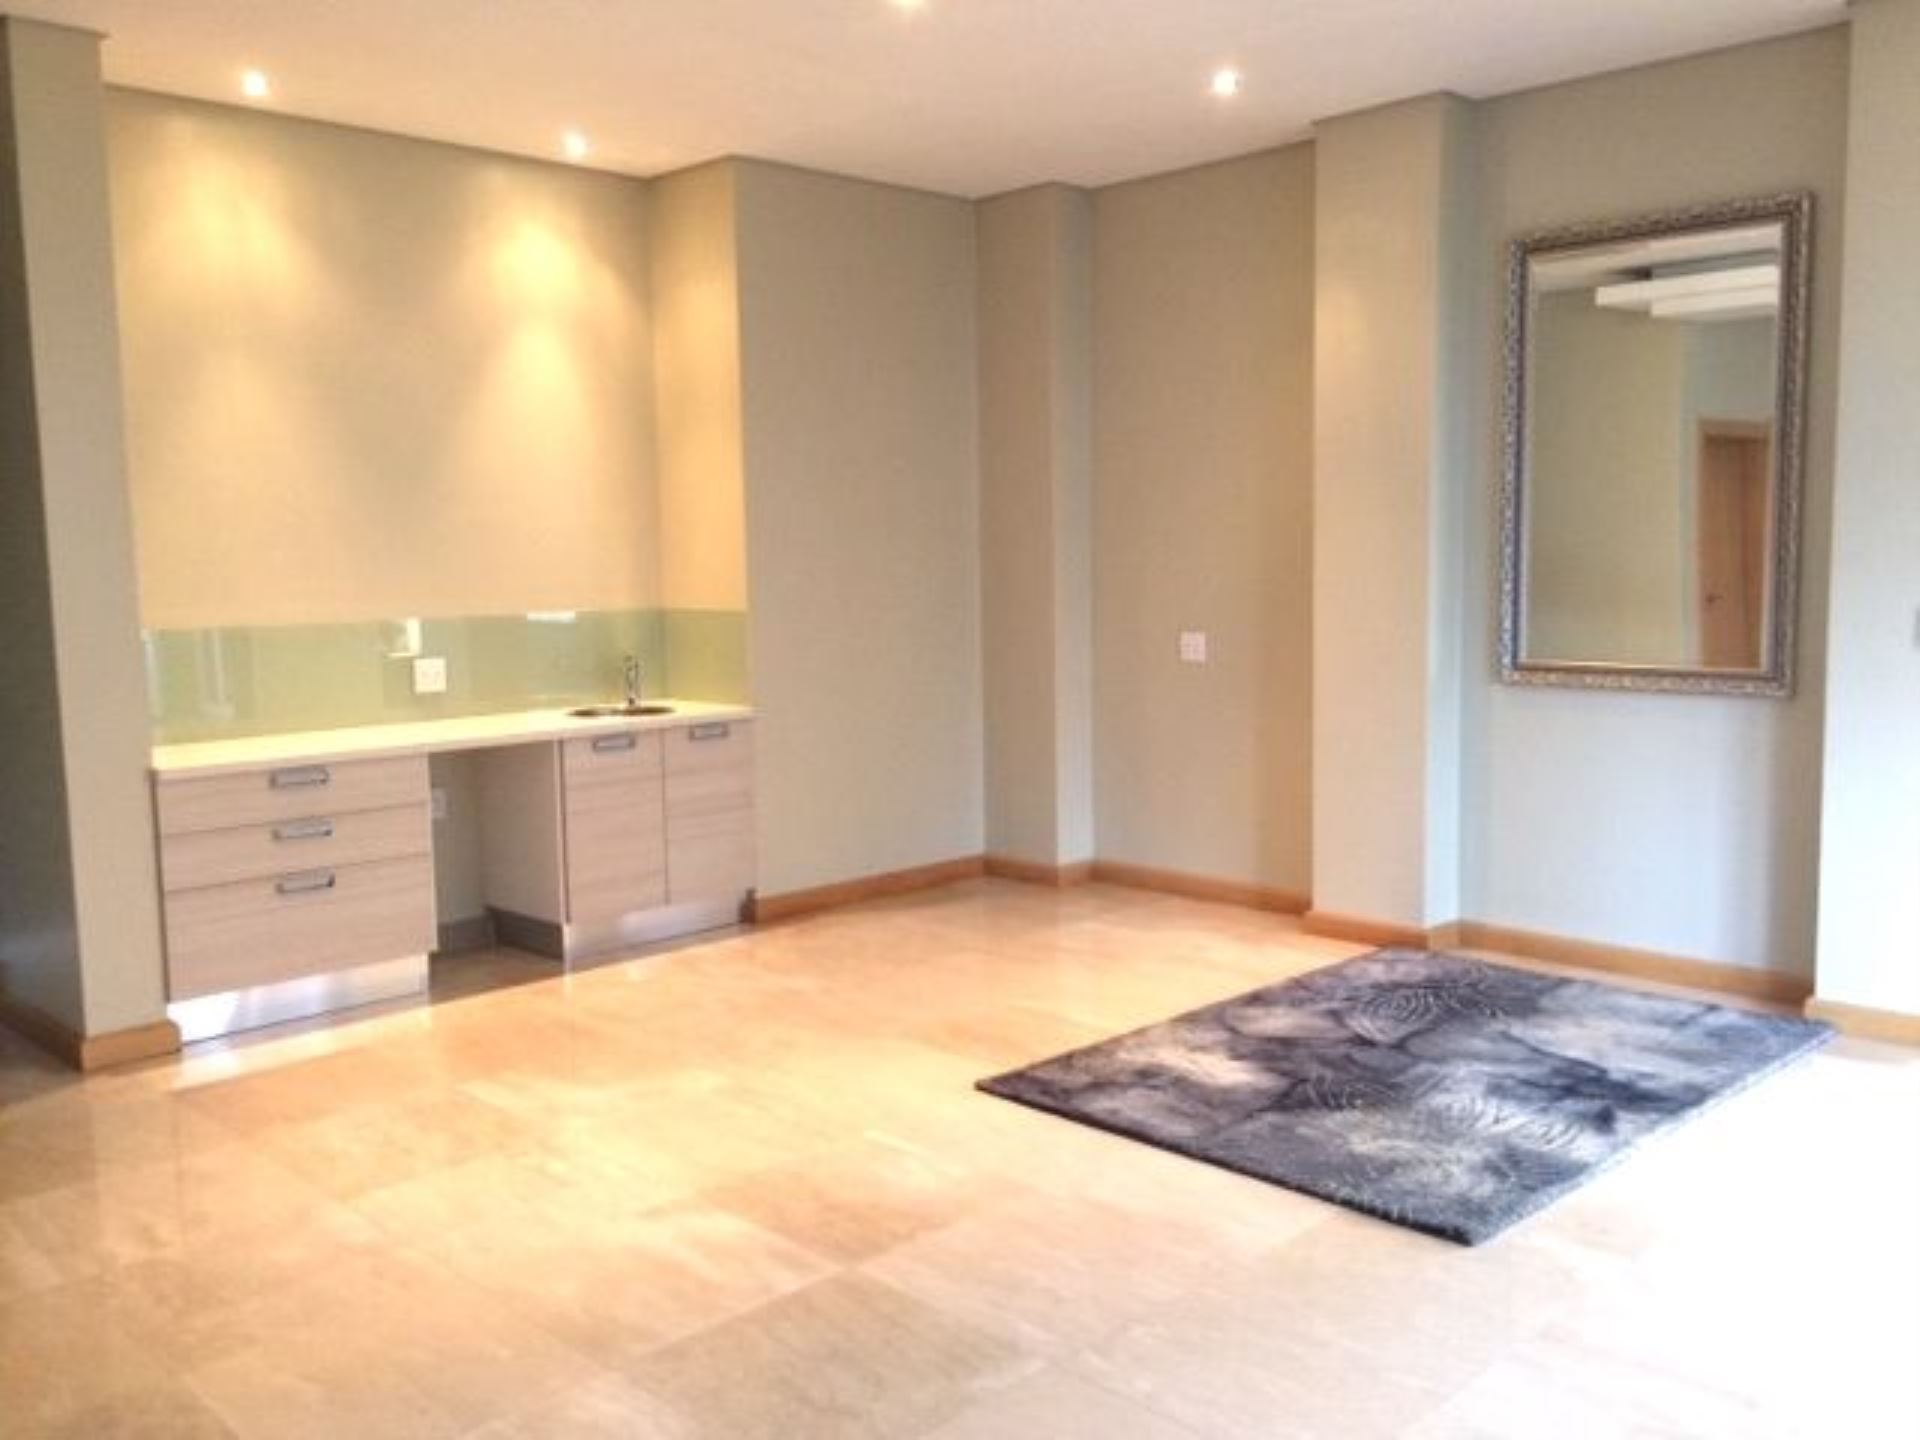 House Rental Monthly in WATERKLOOF HEIGHTS